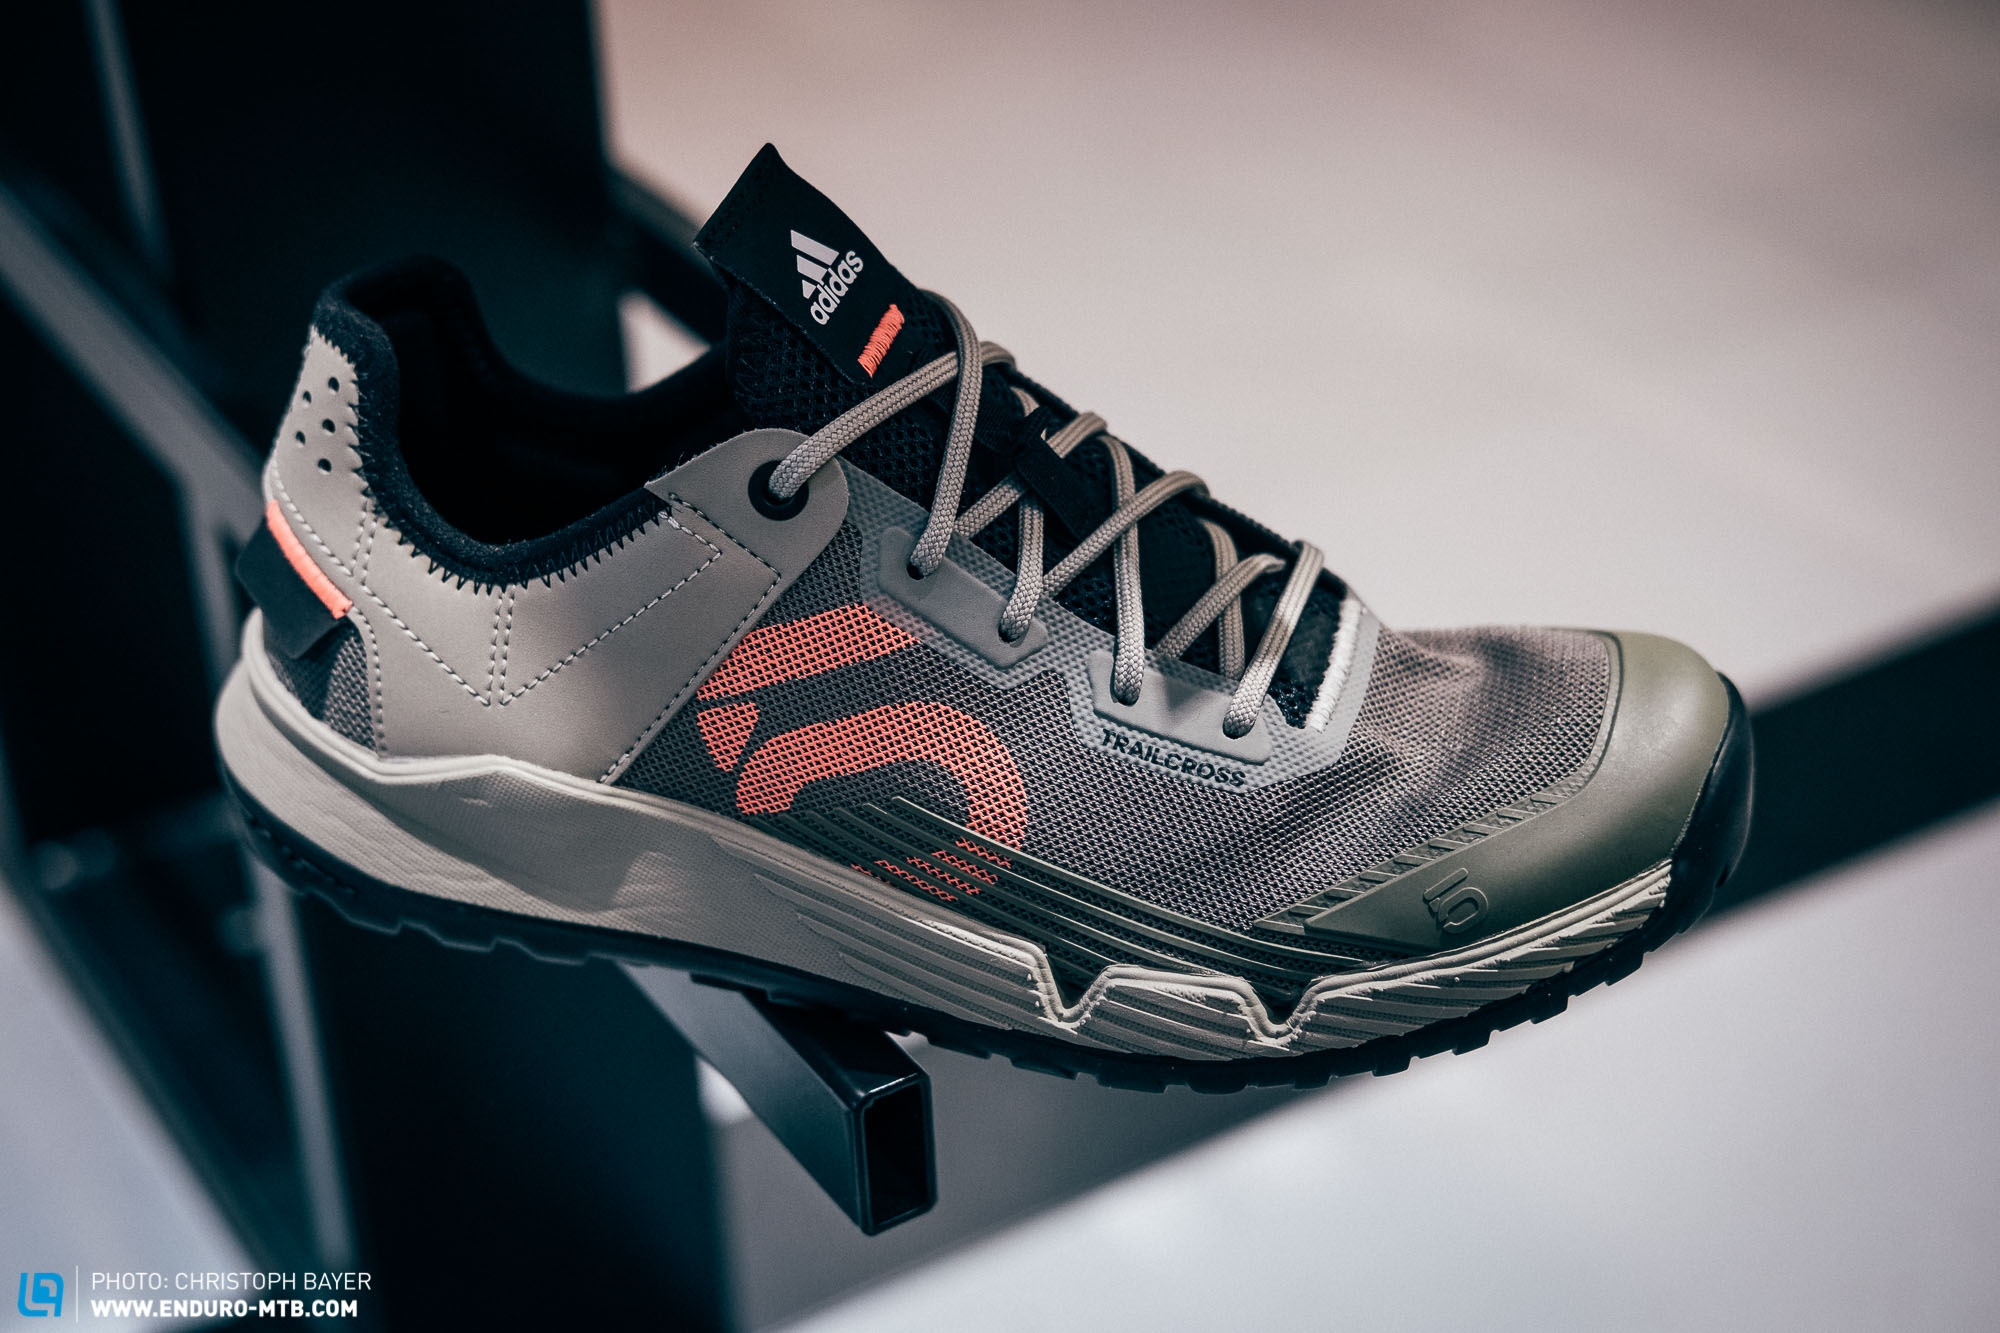 Ordenanza del gobierno Patriótico Salvaje  Introducing Five Ten's Trailcross collection – A new shoe-line developed  with Adidas | ENDURO Mountainbike Magazine